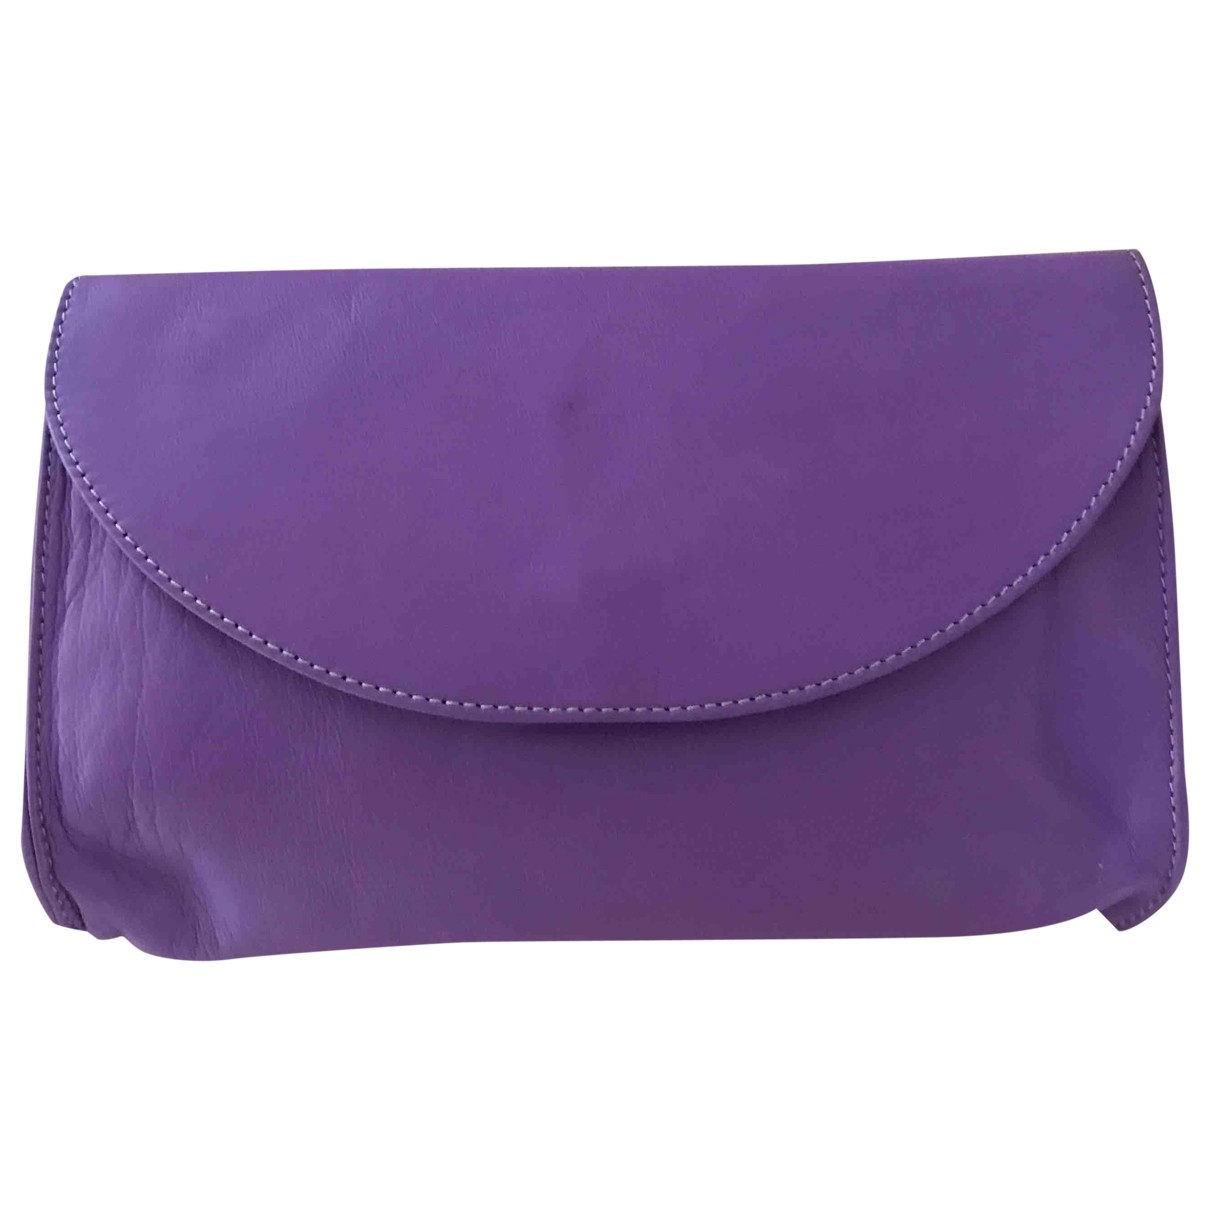 Non Signé / Unsigned \N Purple Leather Clutch bag for Women \N